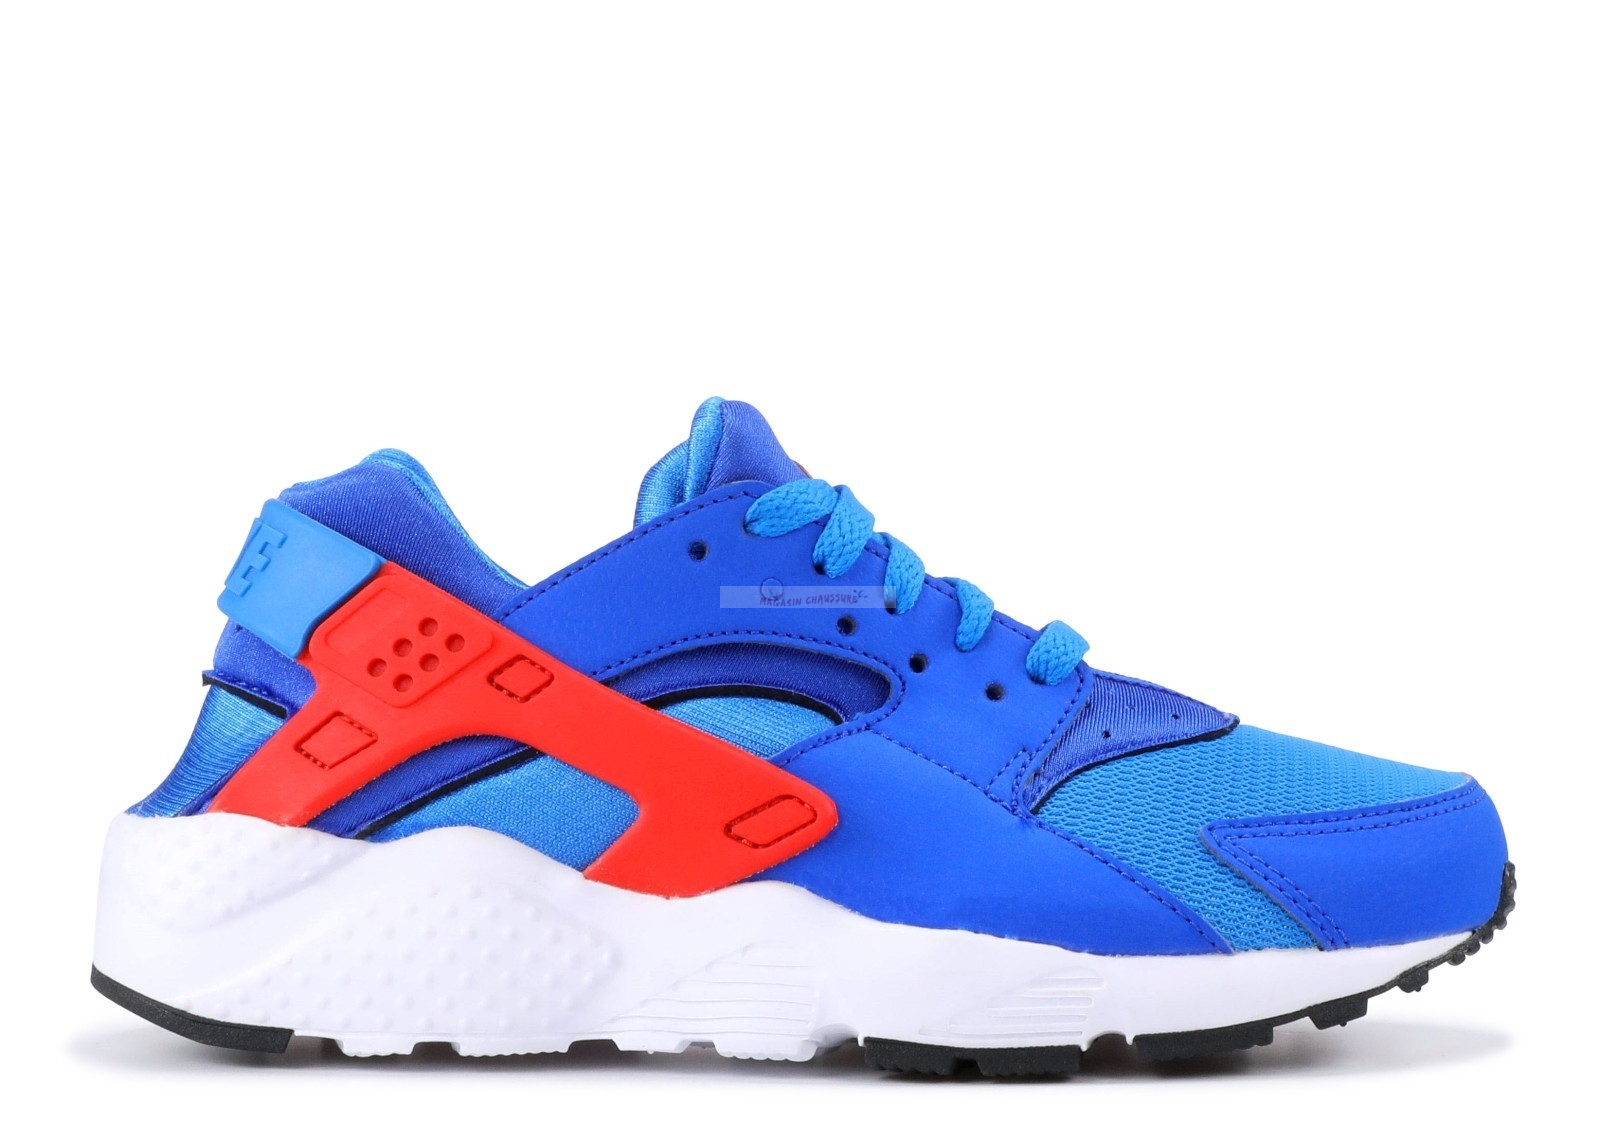 Nike Air Huarache Run (Gs) Bleu Rouge Blanc (654275-400) Chaussure de Basket